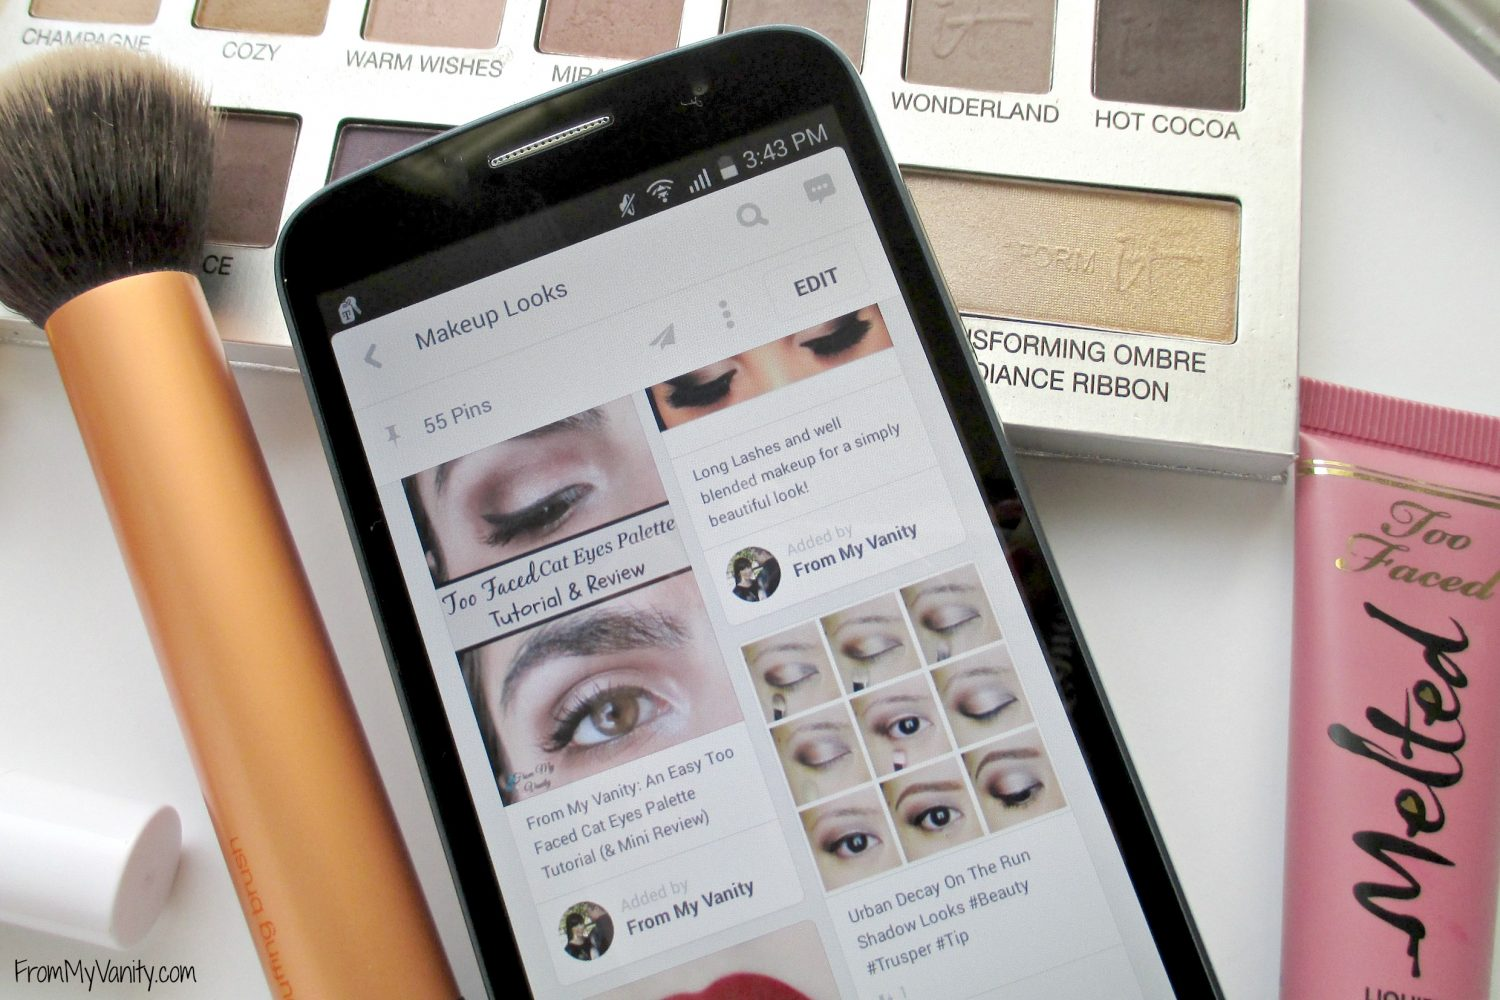 5-ways-i-use-my-data-in-my-beauty-routine-pinterest